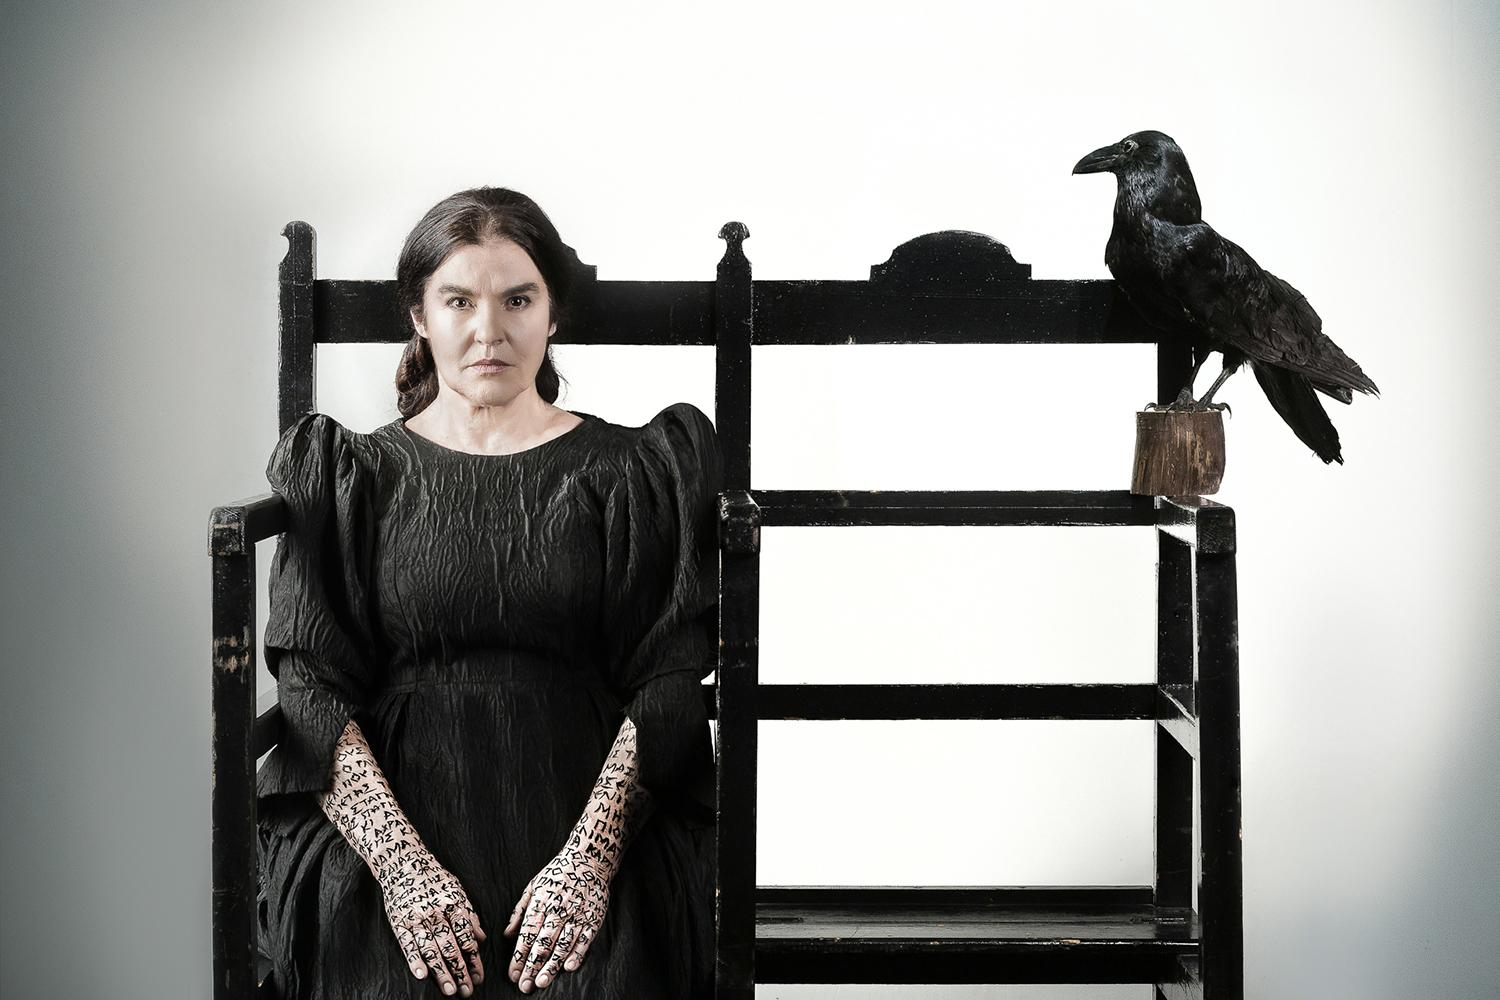 woman sitting on chair with raven